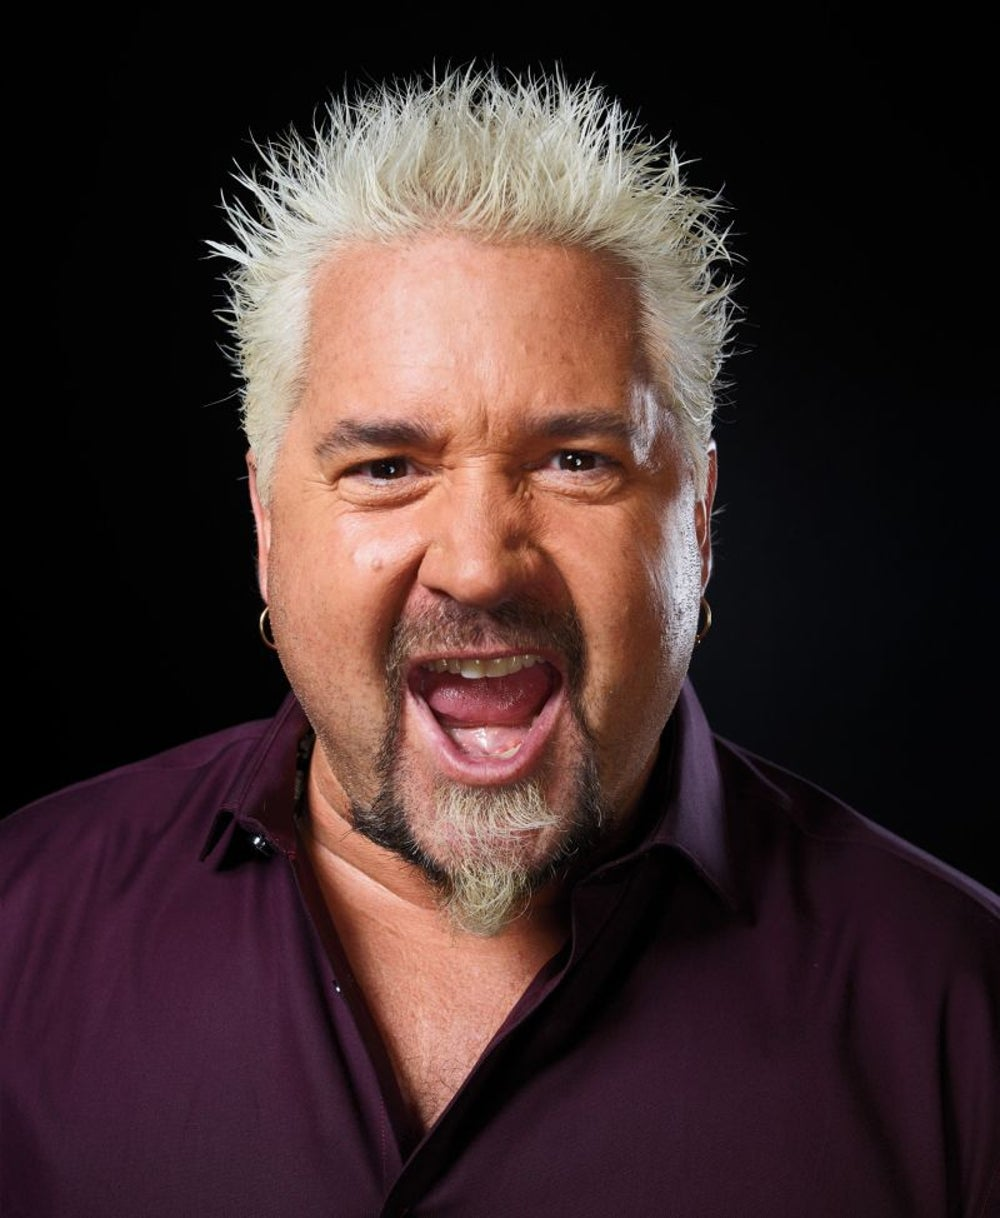 Guy Fieri: Chef, author, TV personality, Donkey Sauce maker